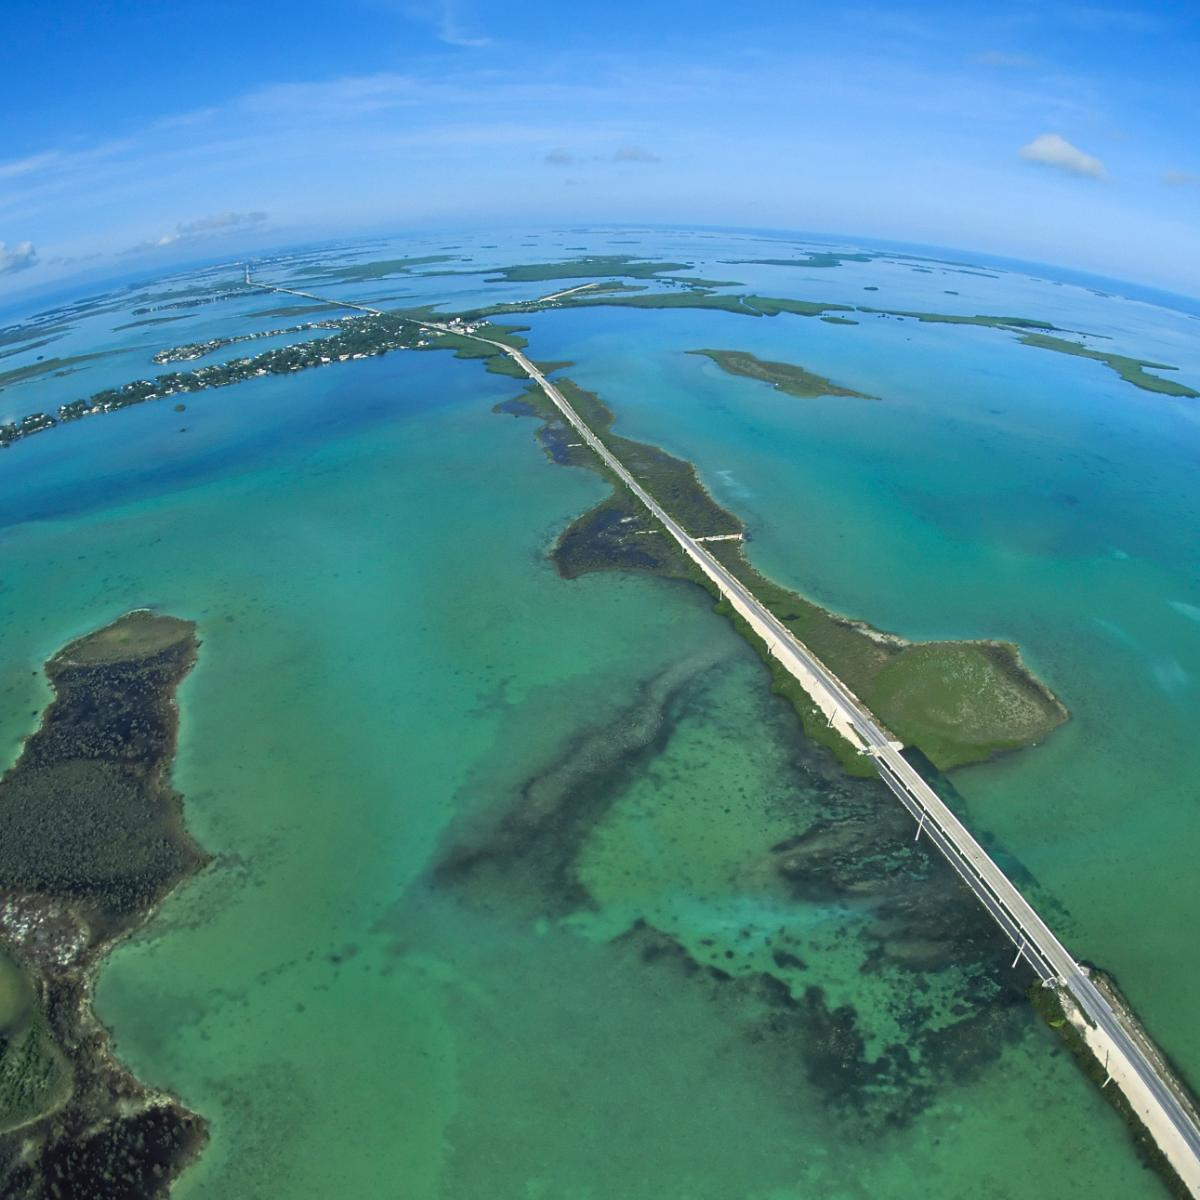 The Overseas Highway, 113-miles of bridges through the Florida Keys.